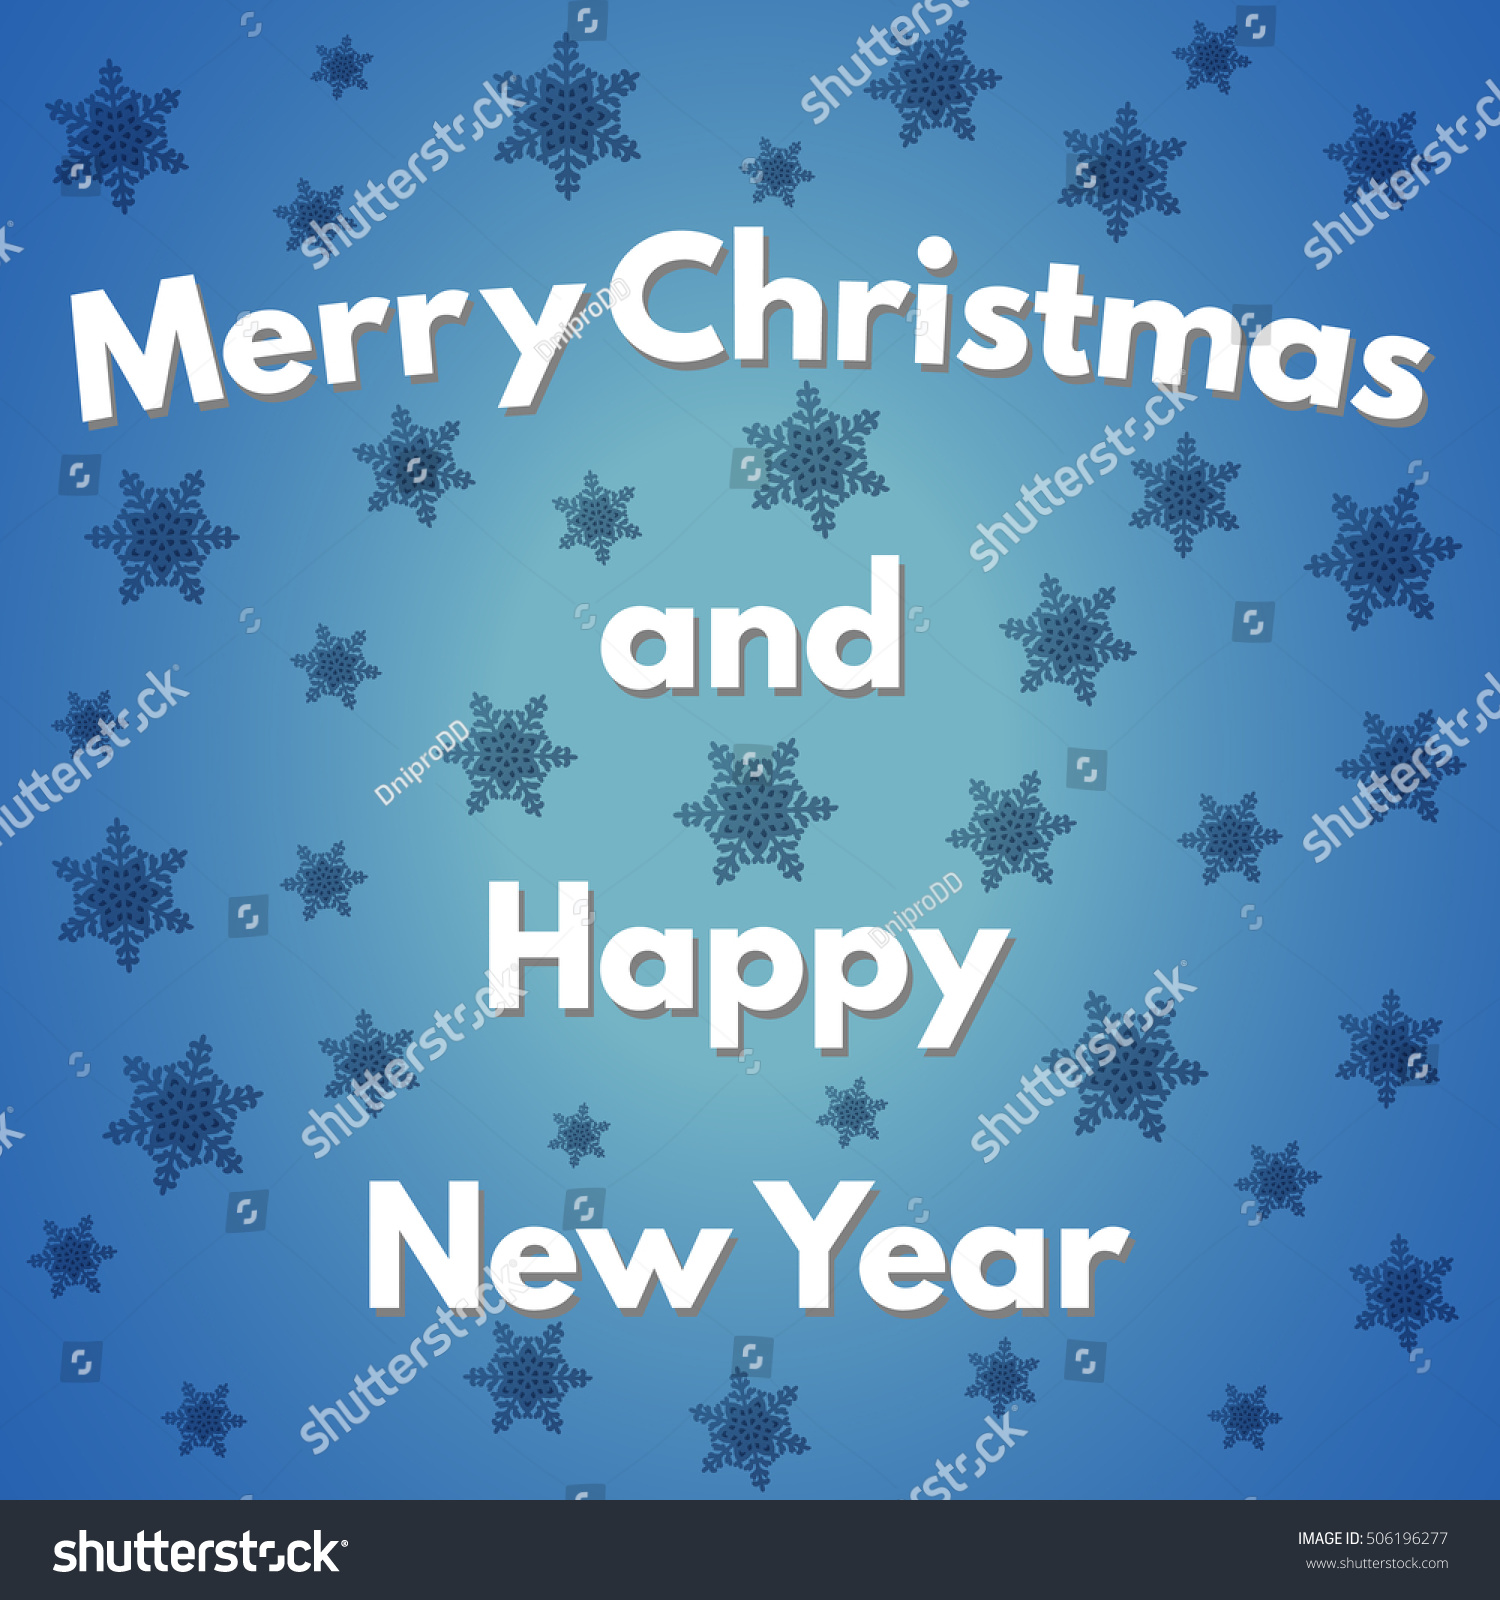 Merry christmas happy new year background stock illustration merry christmas and happy new year background happy holidays card creative design for your kristyandbryce Image collections